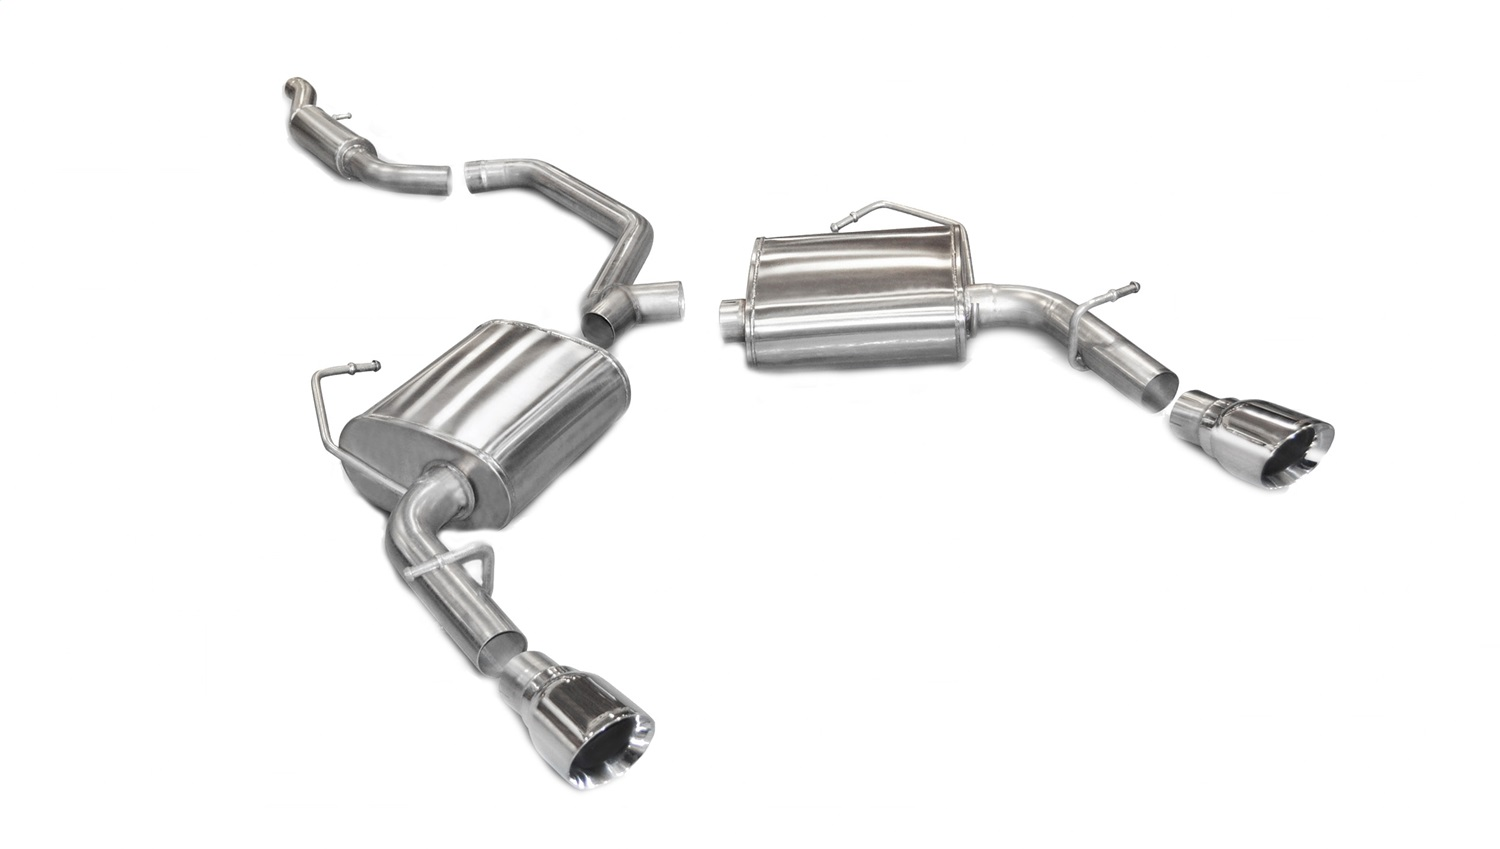 Corsa Performance 14413 Sport Cat-Back Exhaust System Fits 11-14 200 Avenger